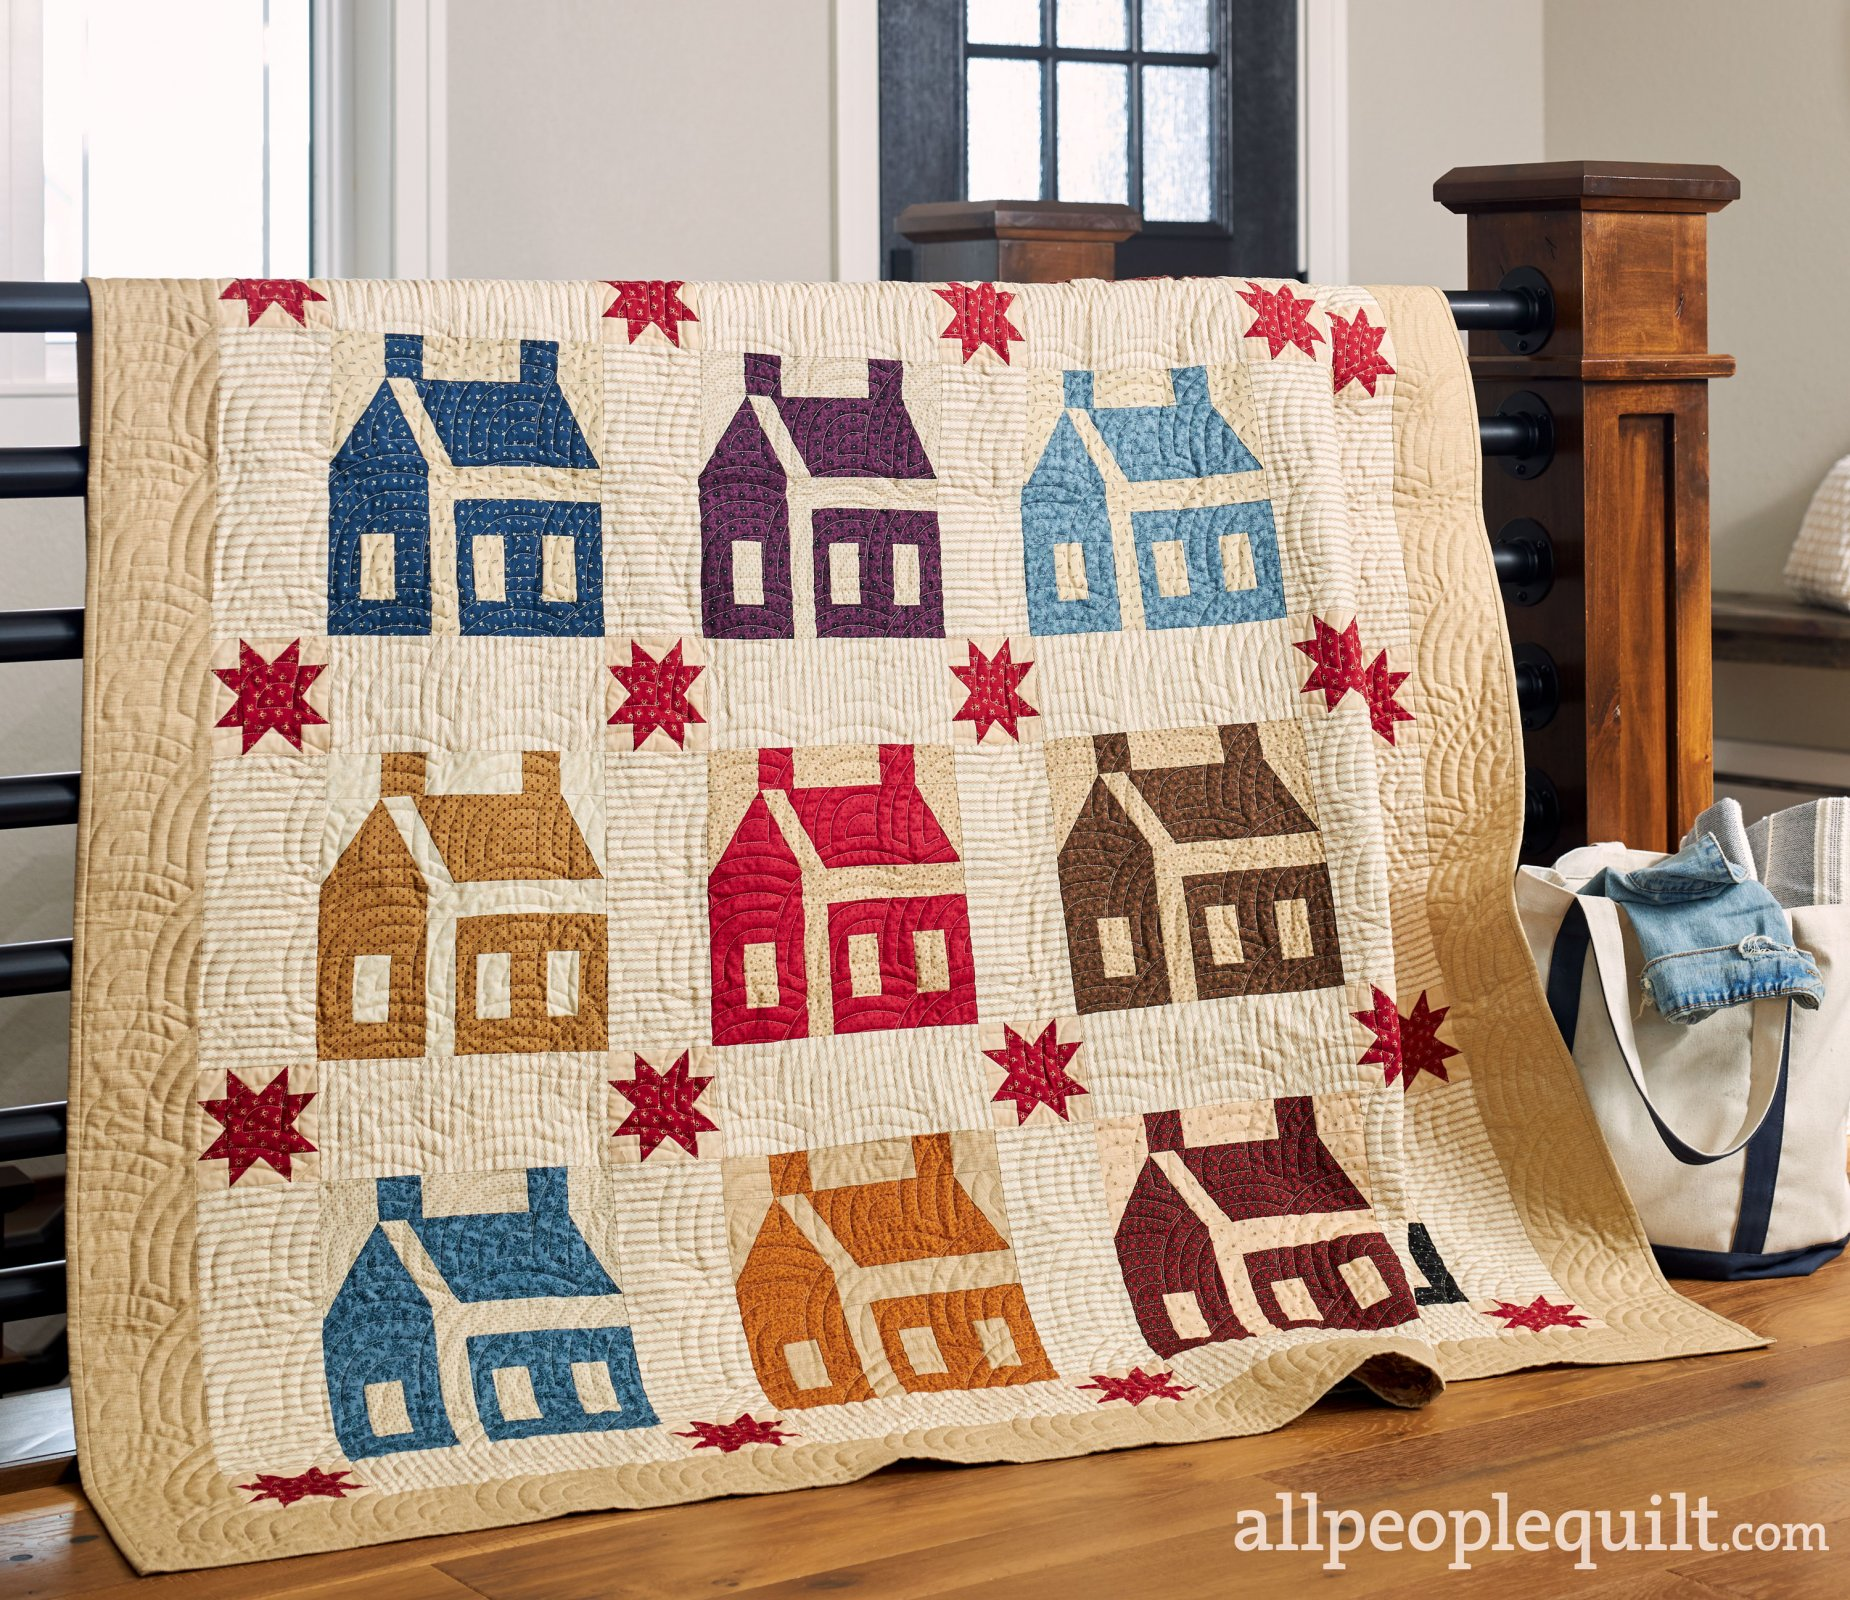 Schoolhouse Quilt Kit